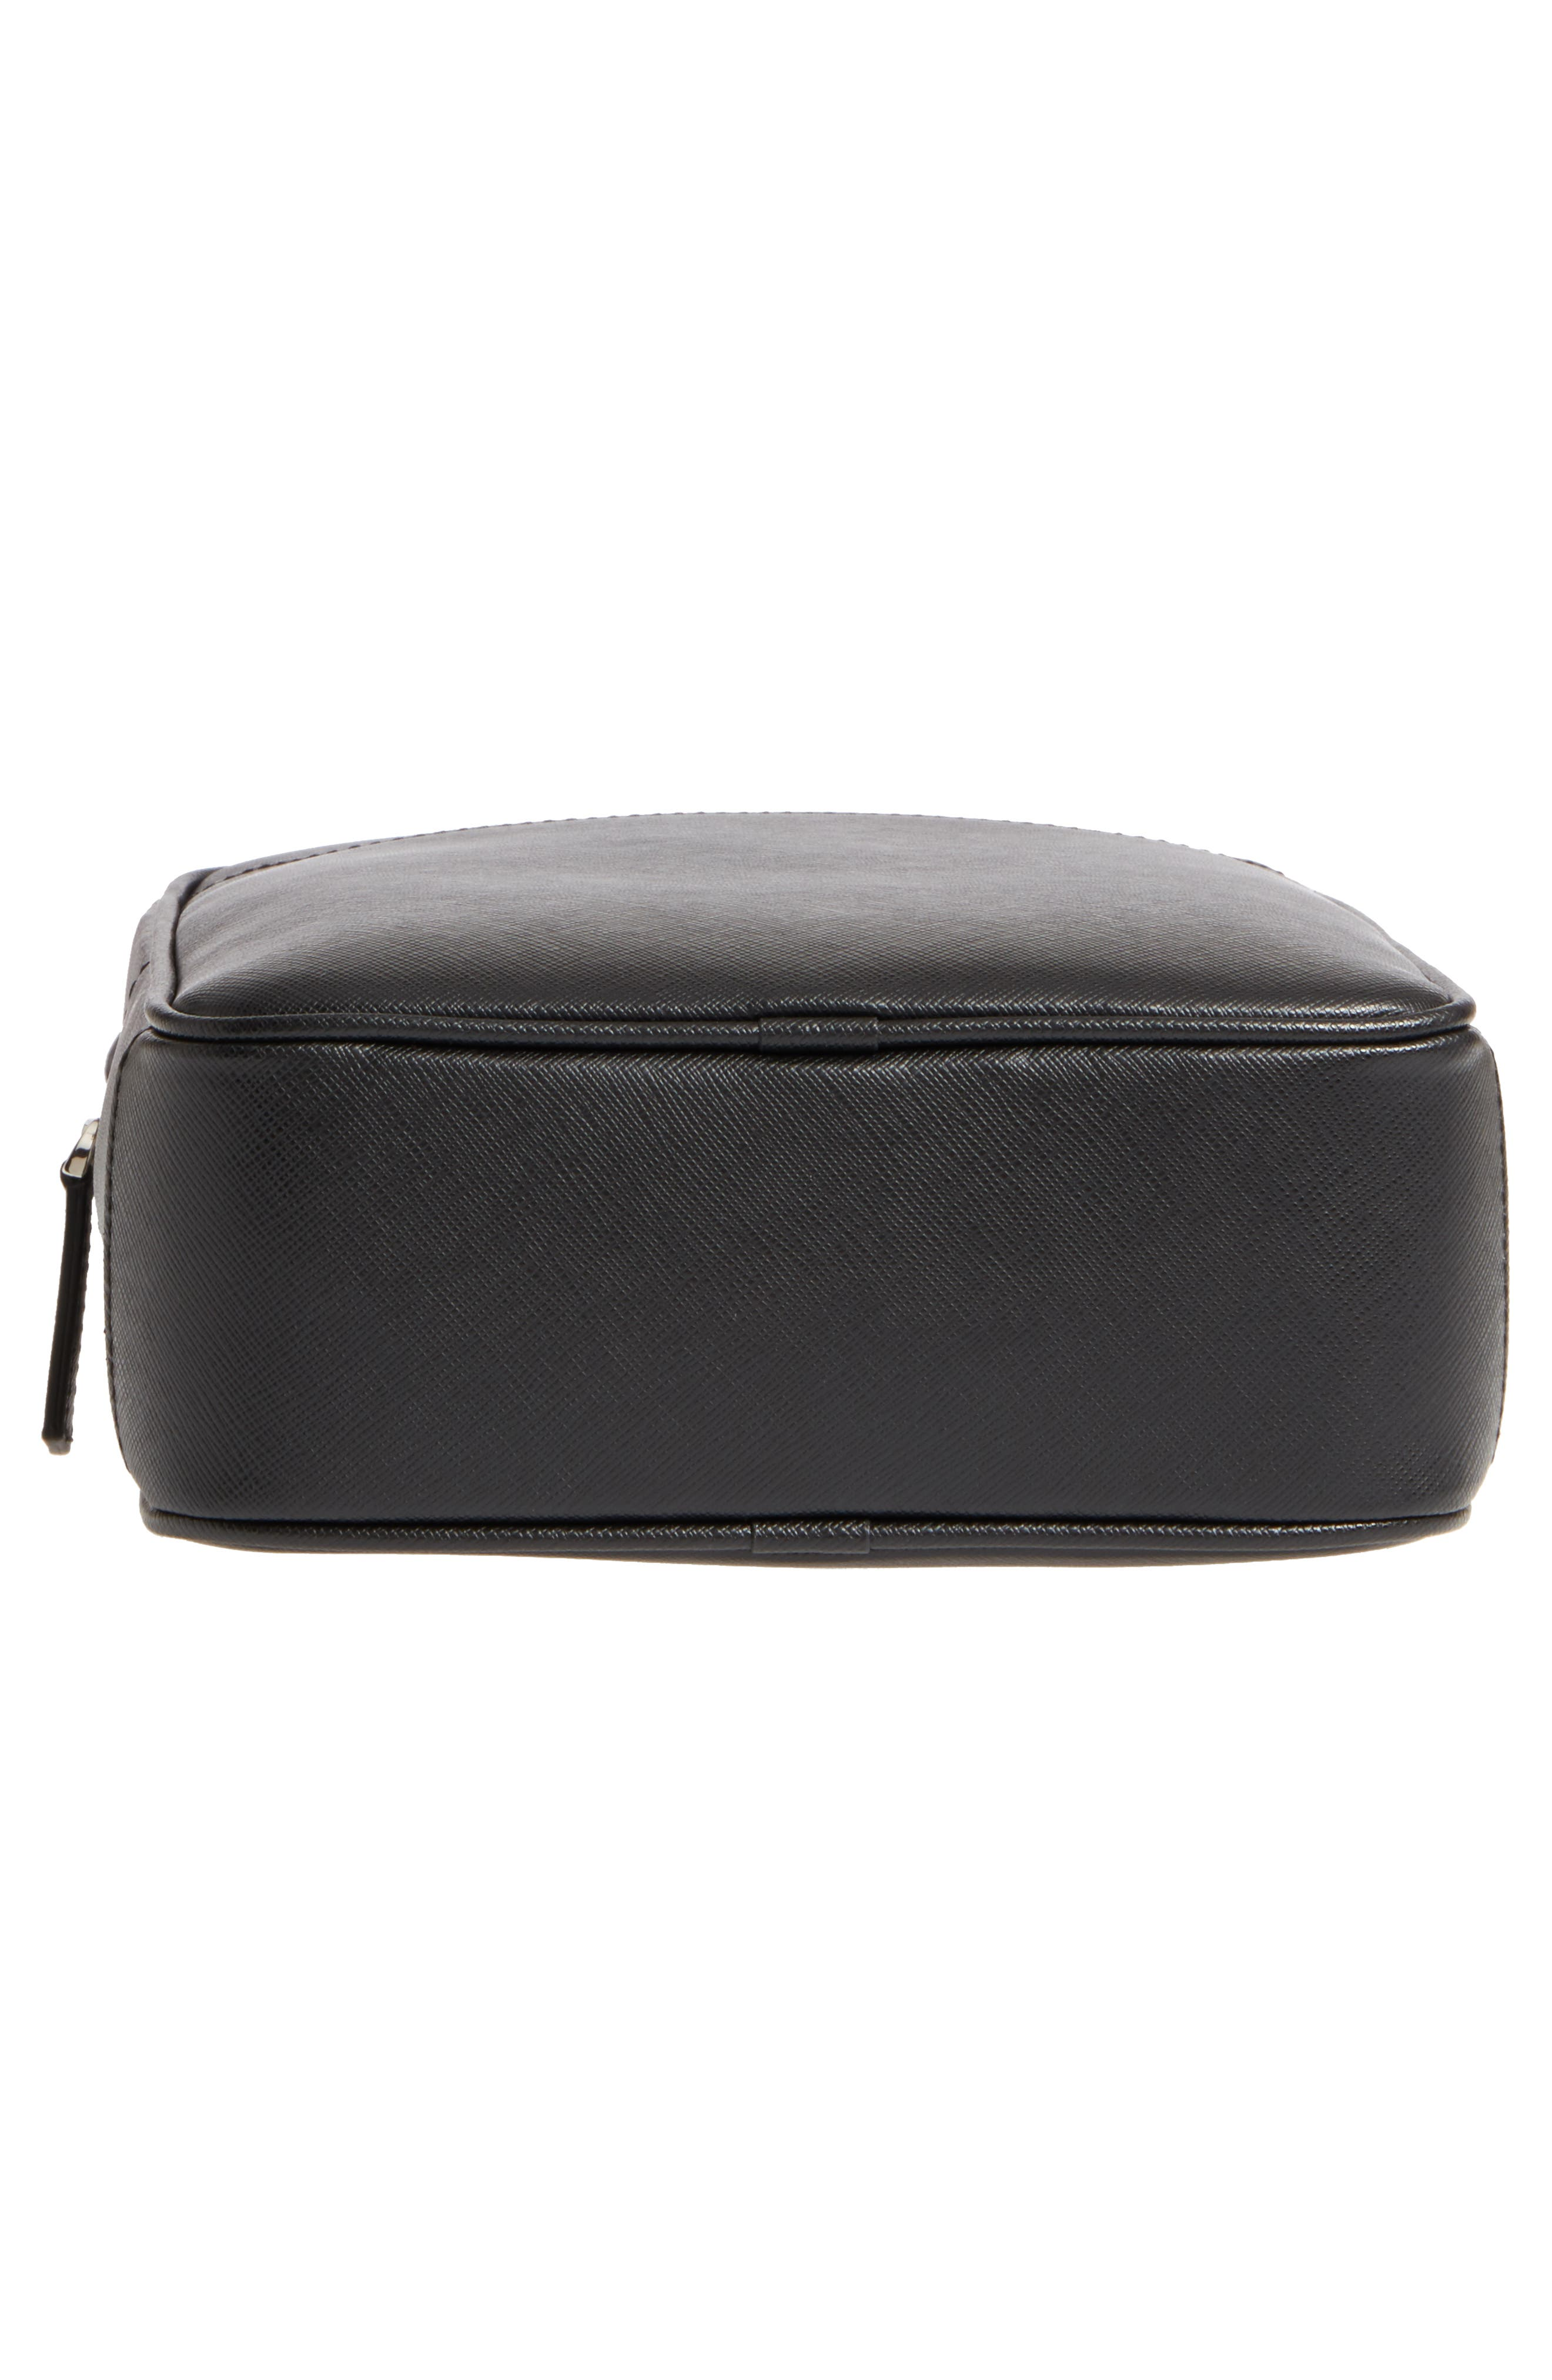 Sartorial North South Leather Bag,                             Alternate thumbnail 6, color,                             001